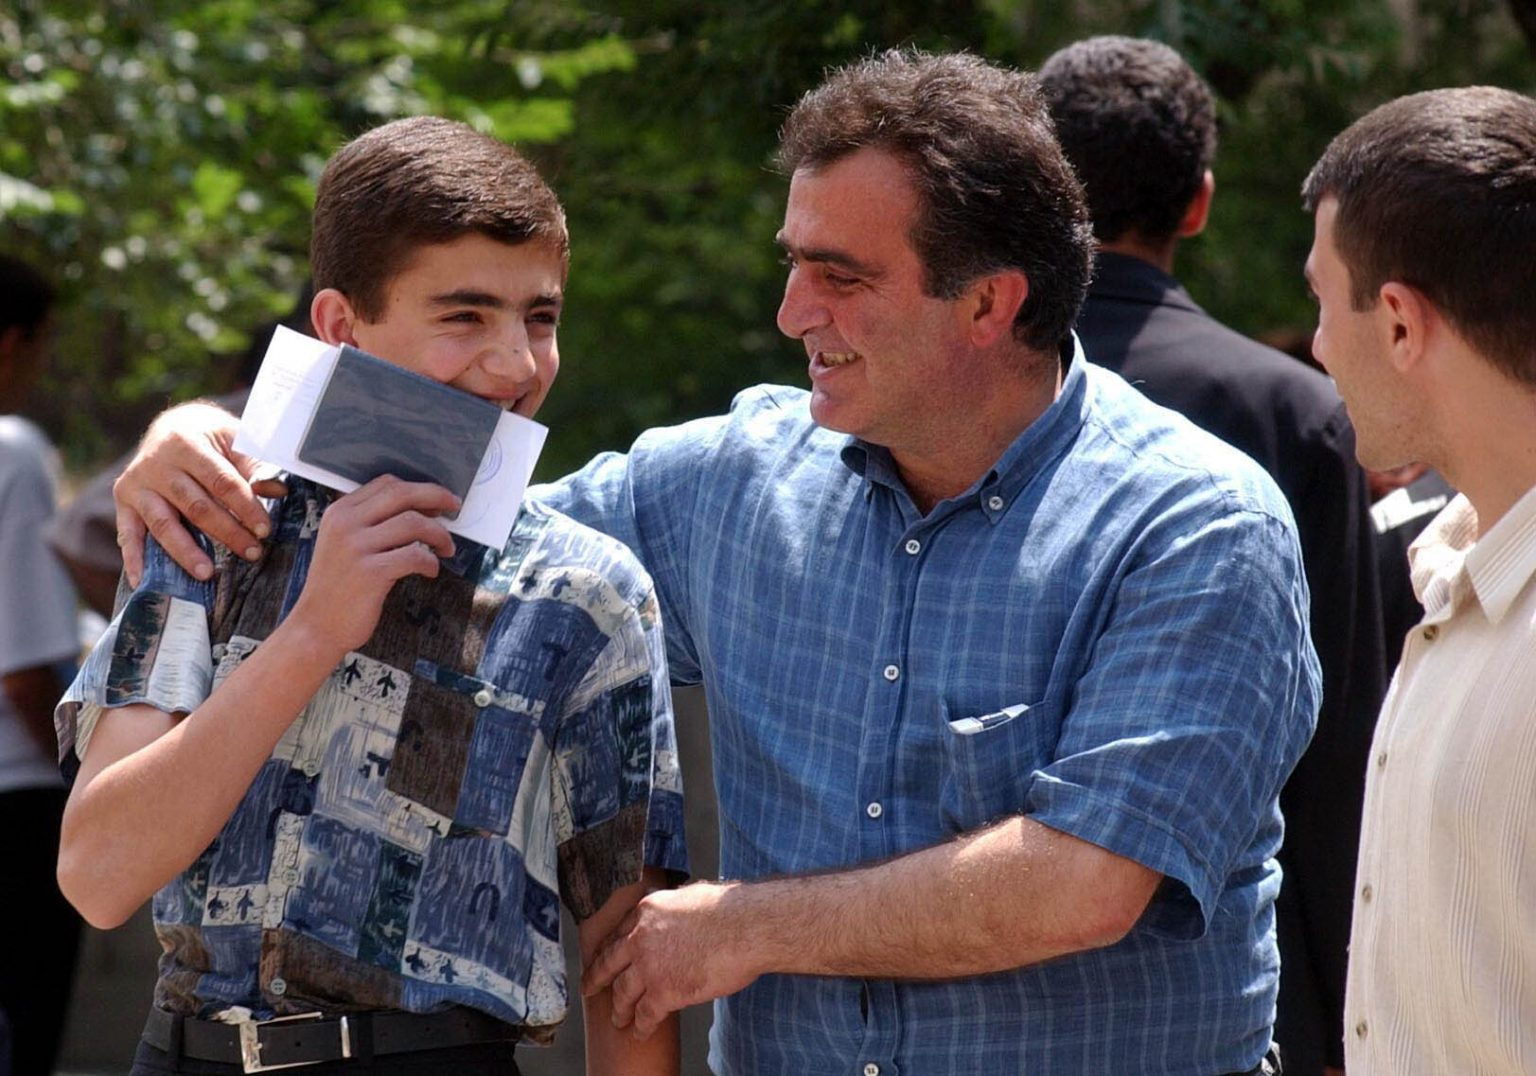 This has been a nerve-wracking week for many students as they have waited to discover if they have passed entrance exams for universities in Armenia. For this student in Yerevan, success brought a smile and a kiss from a relative.